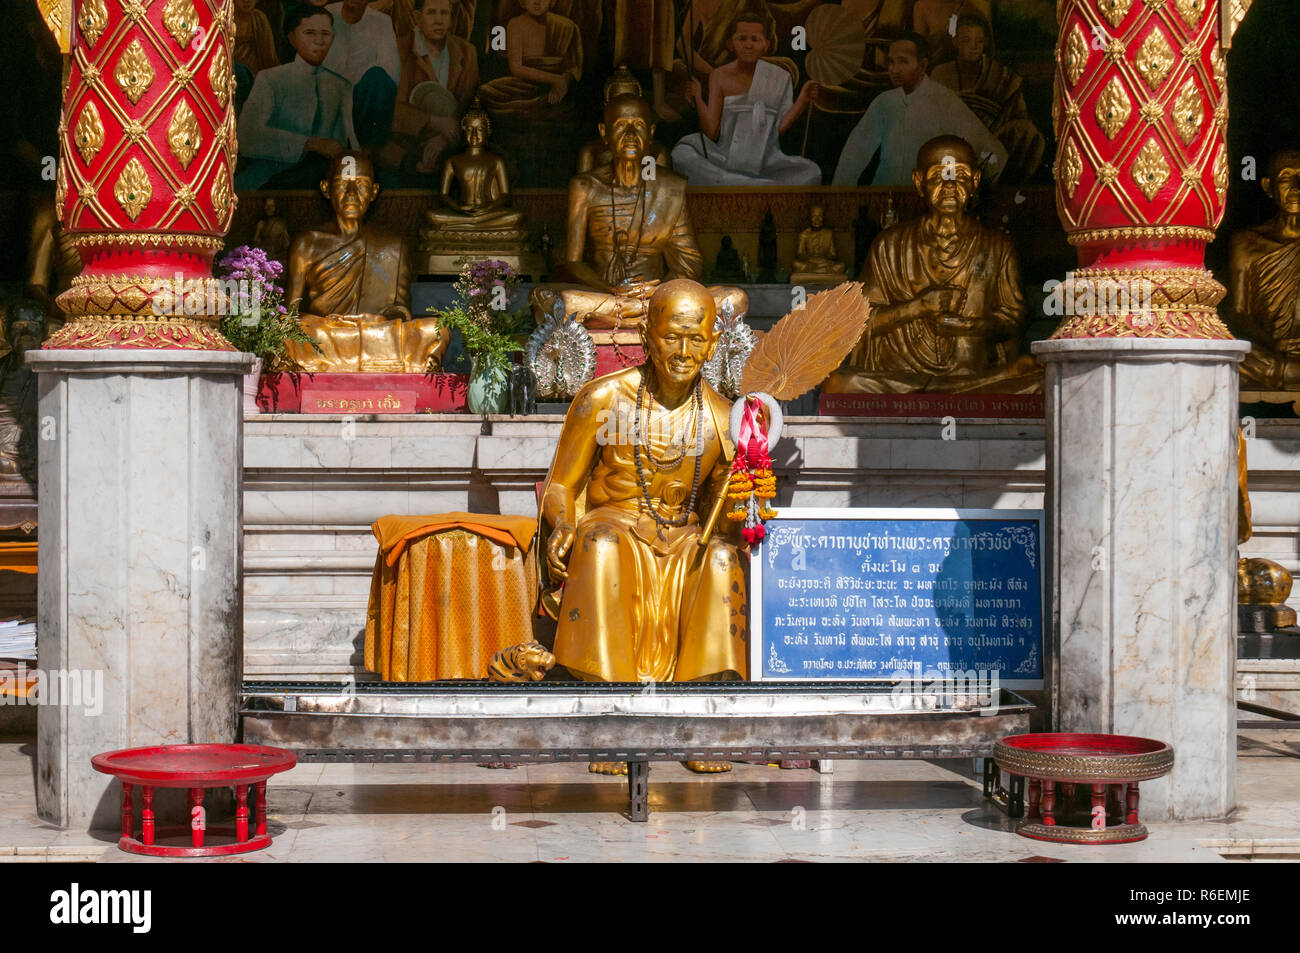 Statue Famous Monk In Thailand Stock Photos & Statue Famous Monk In